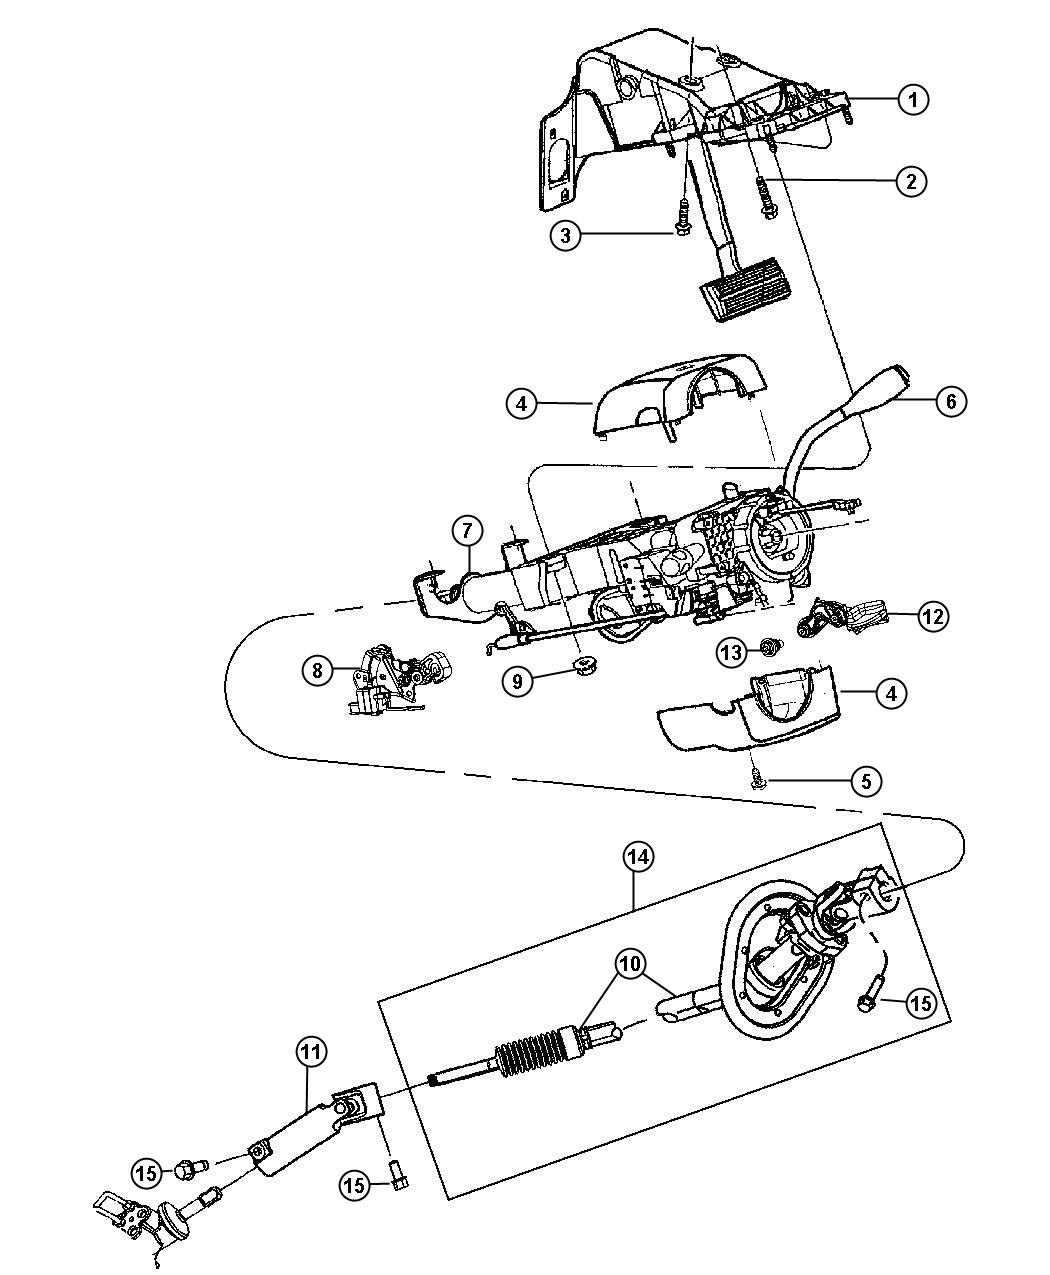 Ram 3500 Shaft. Intermediate, steering column intermediate